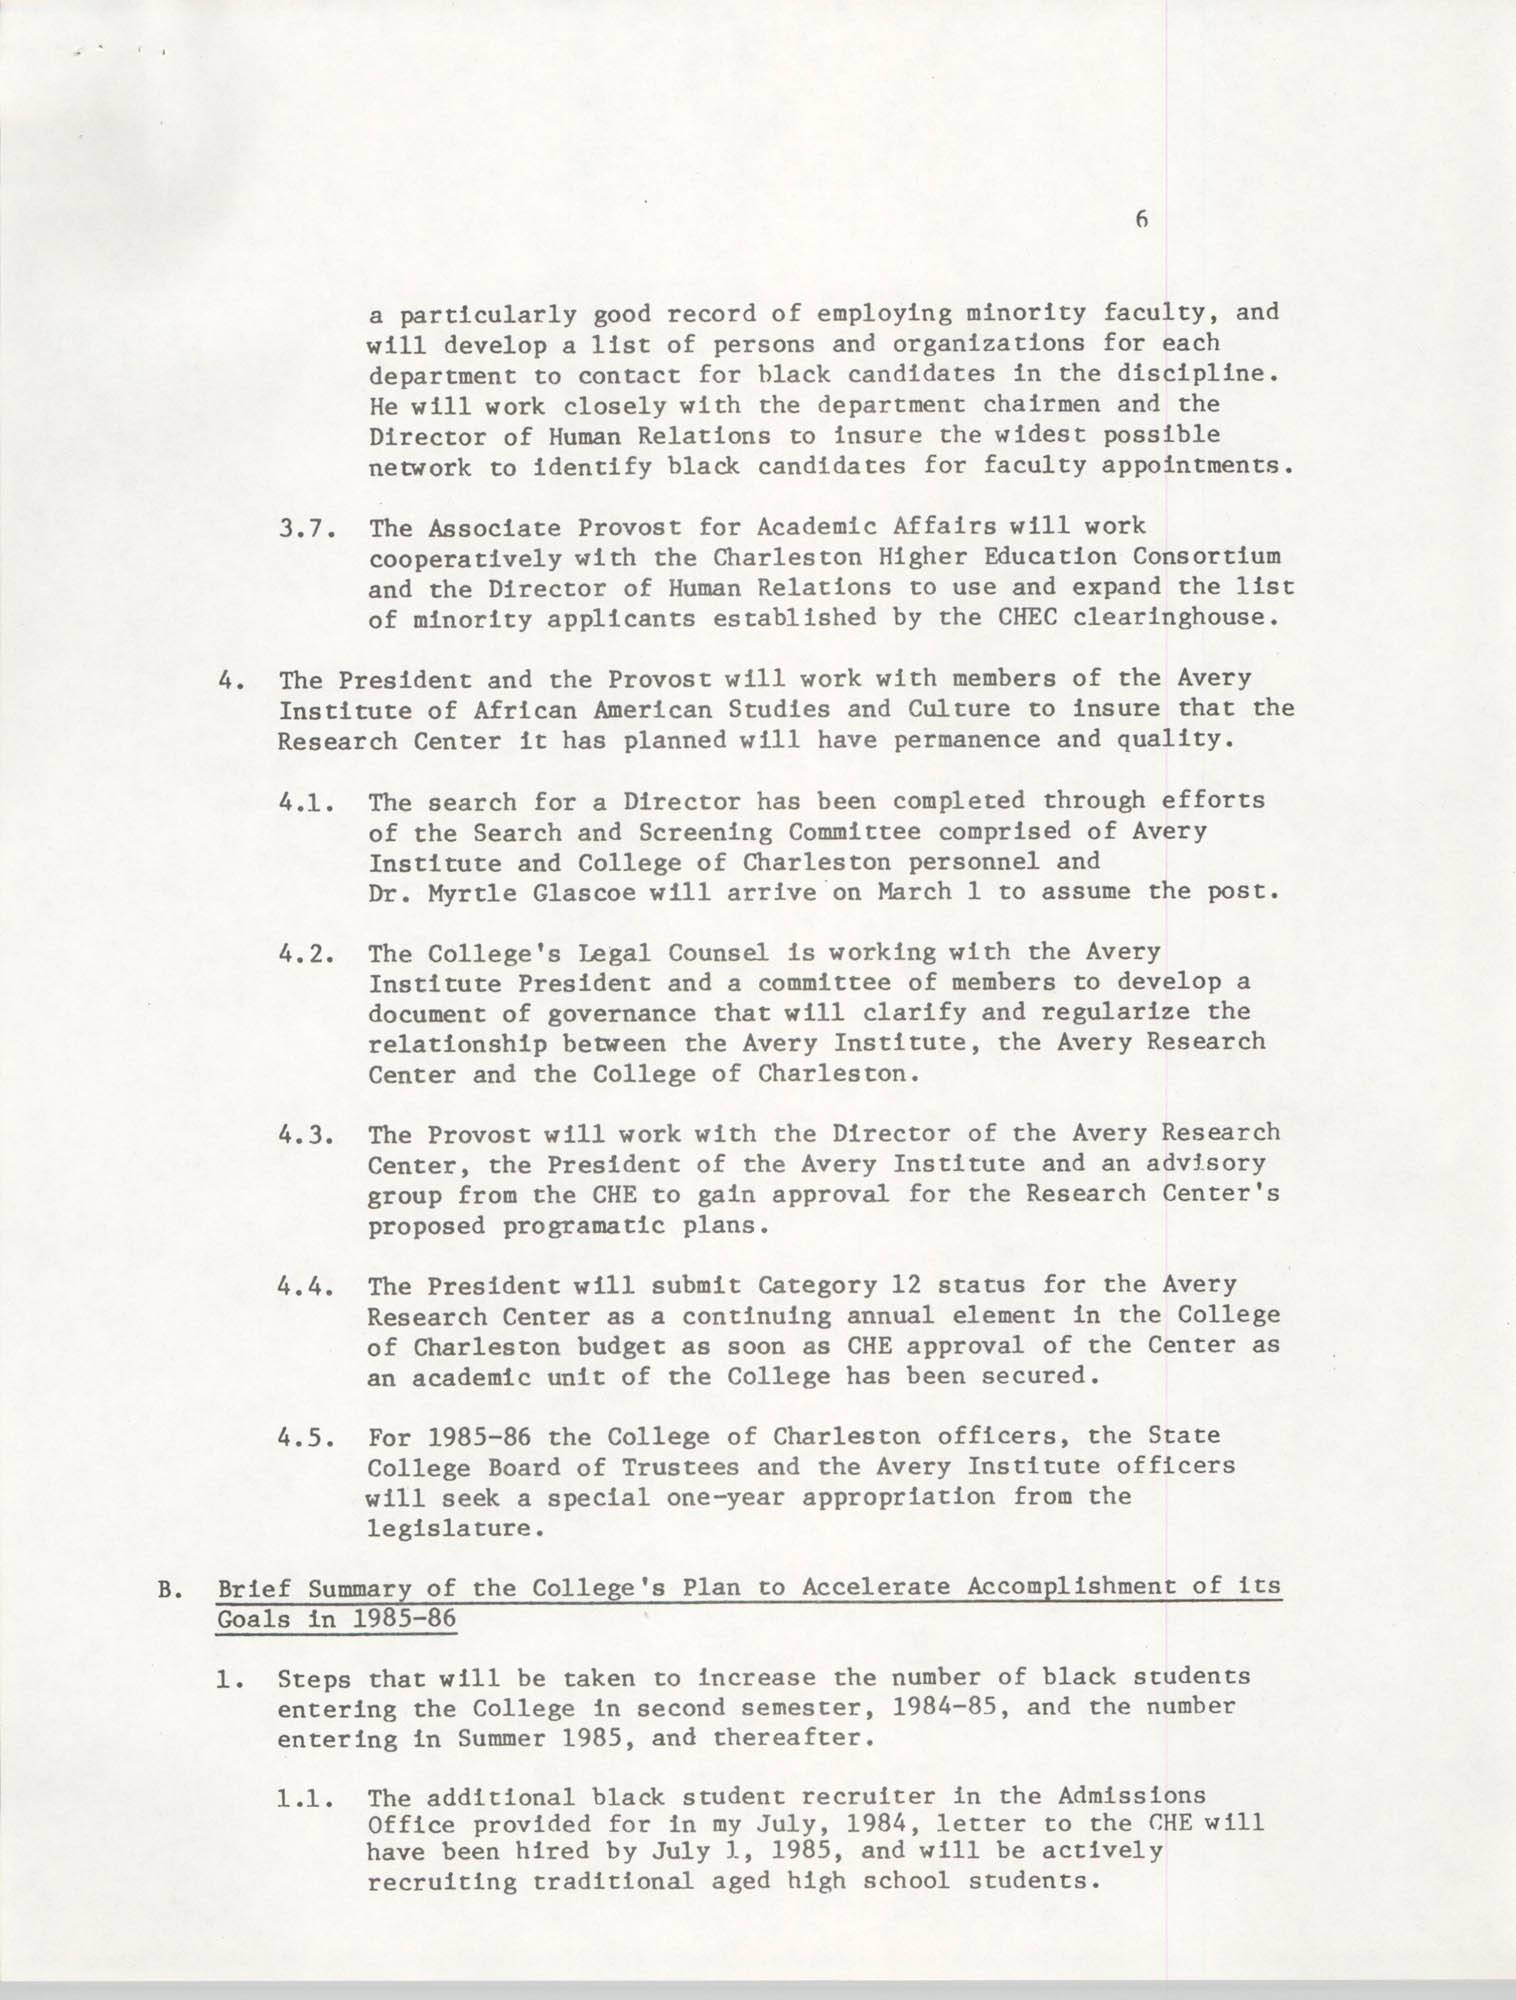 College of Charleston, Updated Summary of Desegregation Efforts, Page 6